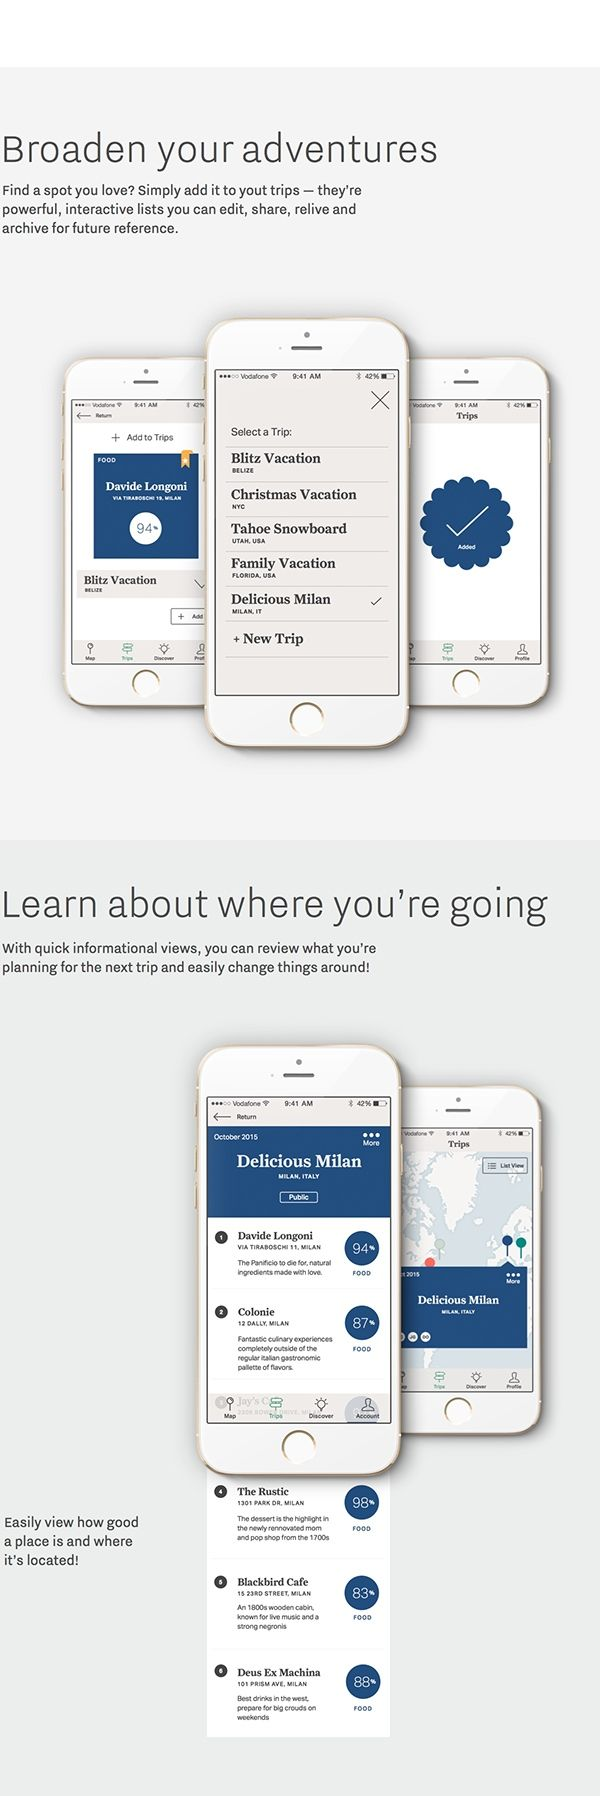 The Pulse app offers a new way to travel and explore the